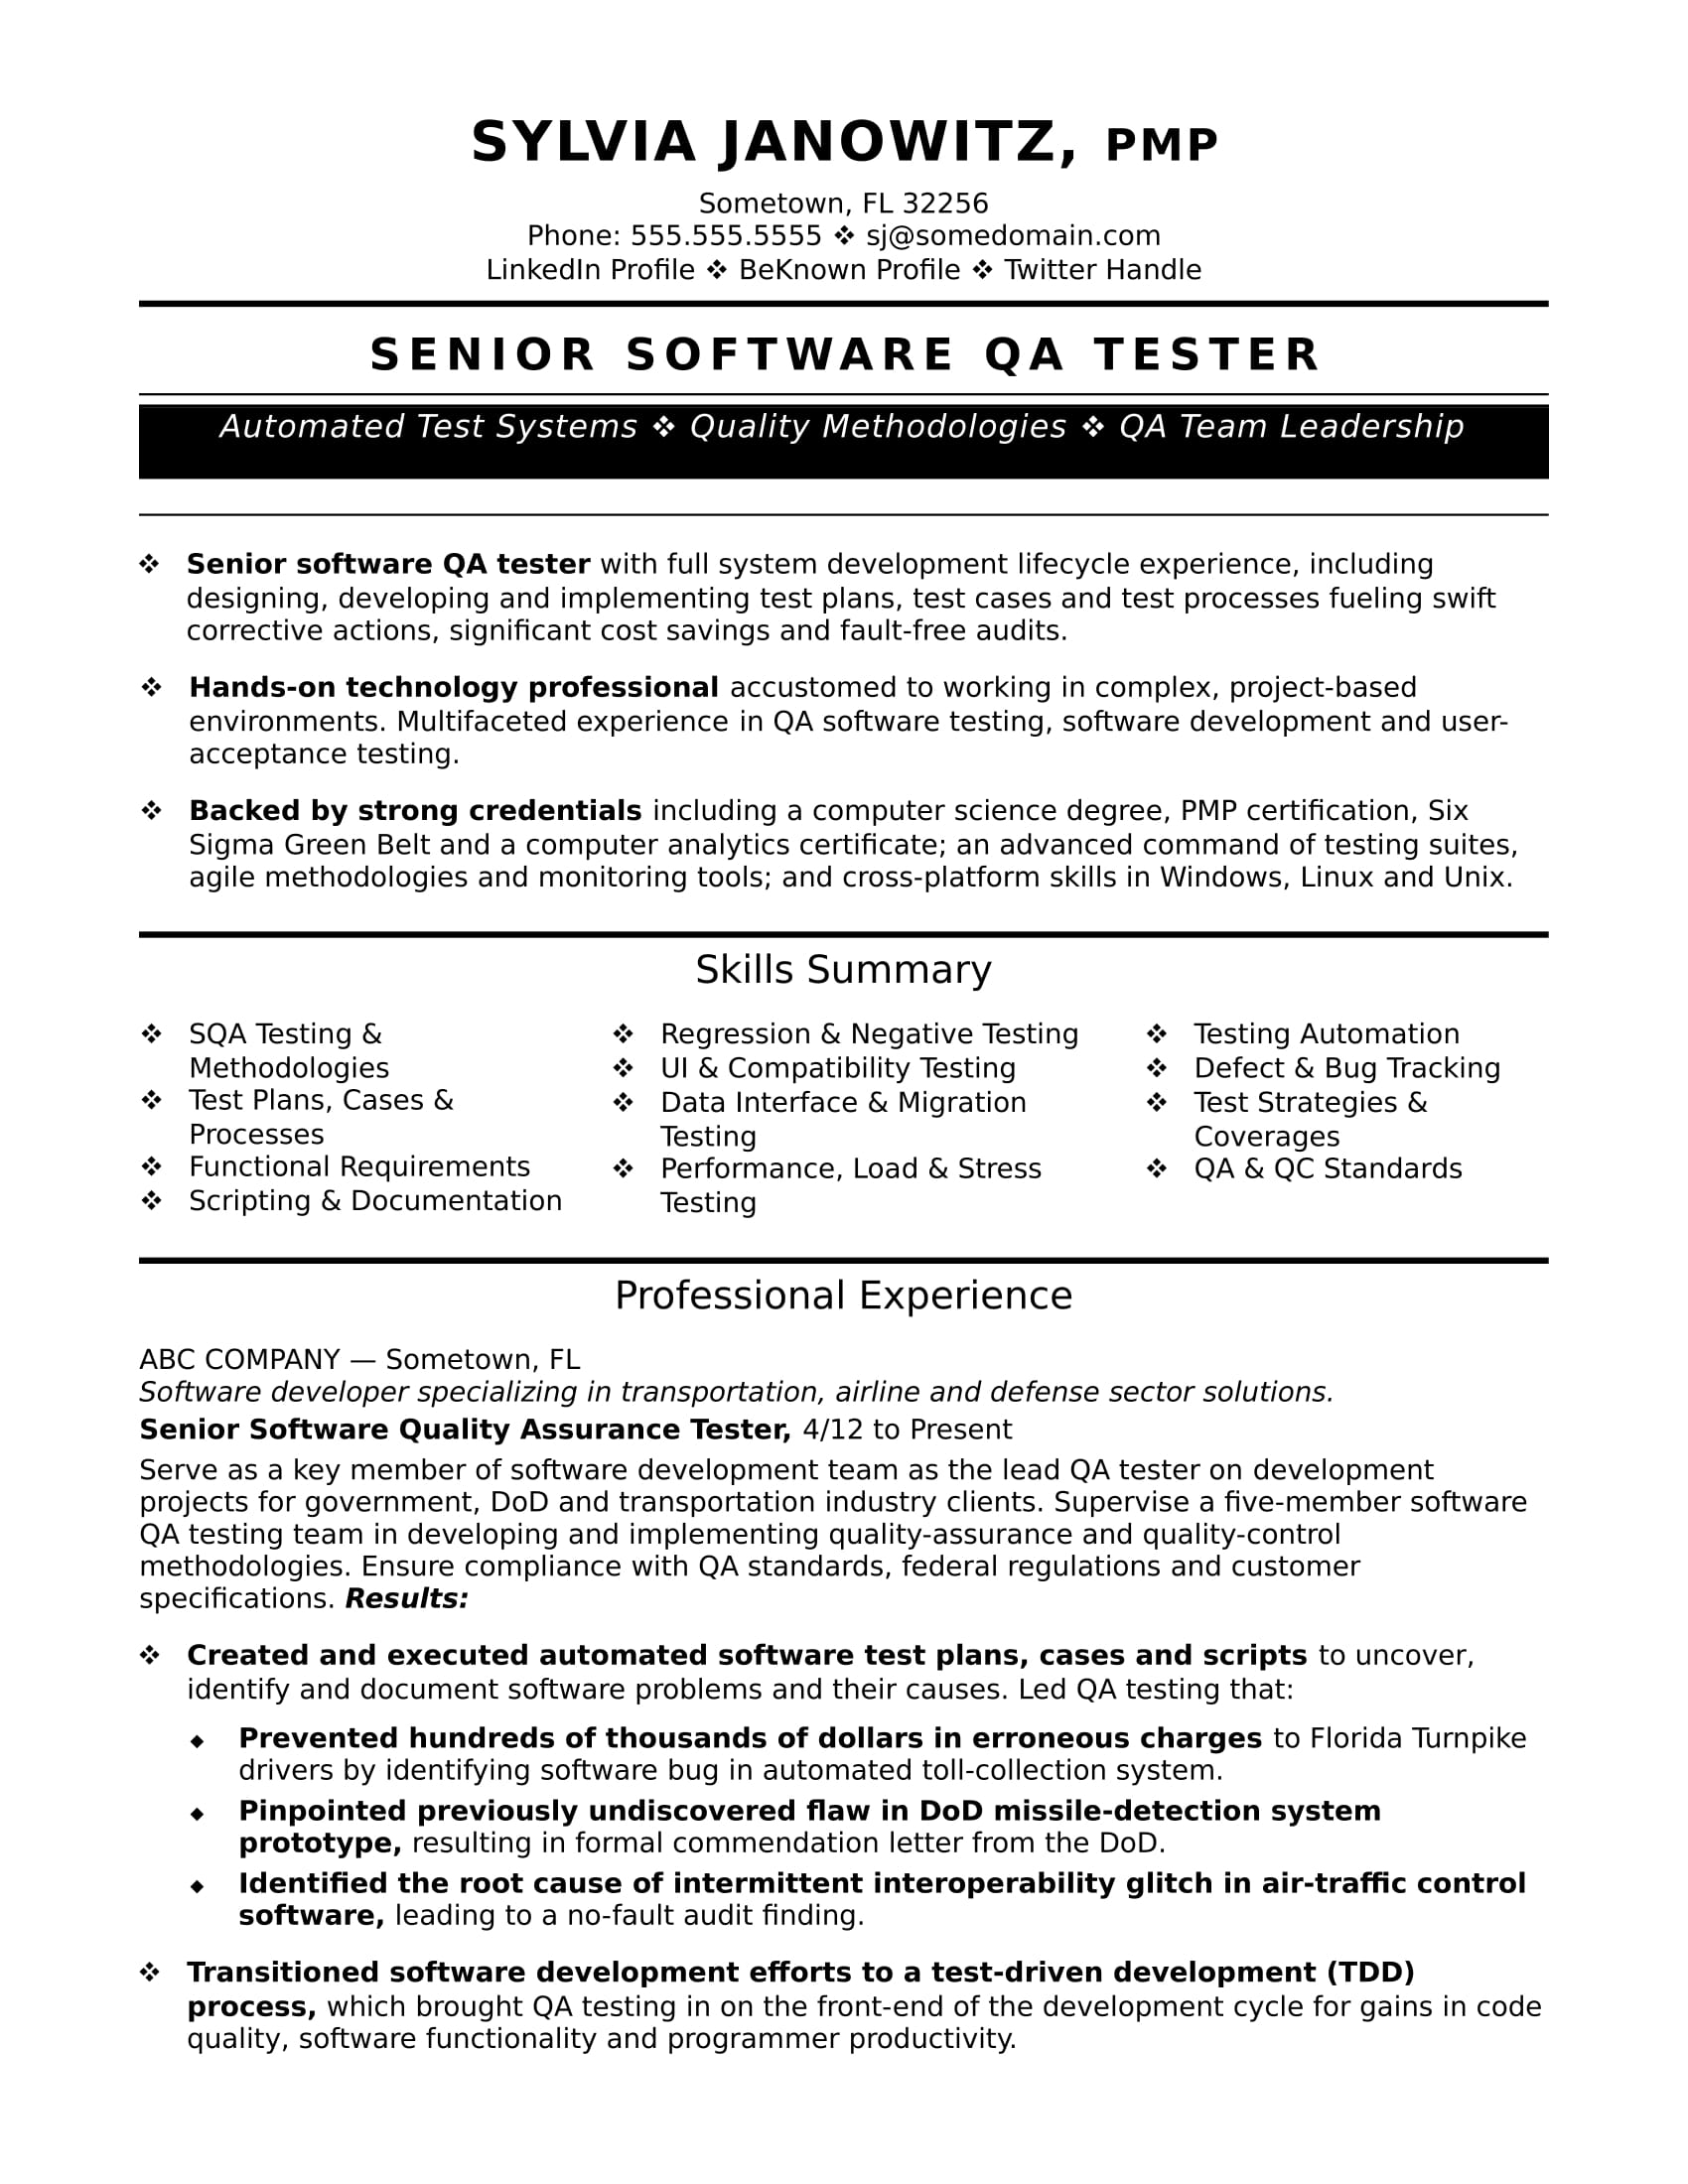 Lovely Experienced QA Software Tester Resume Sample